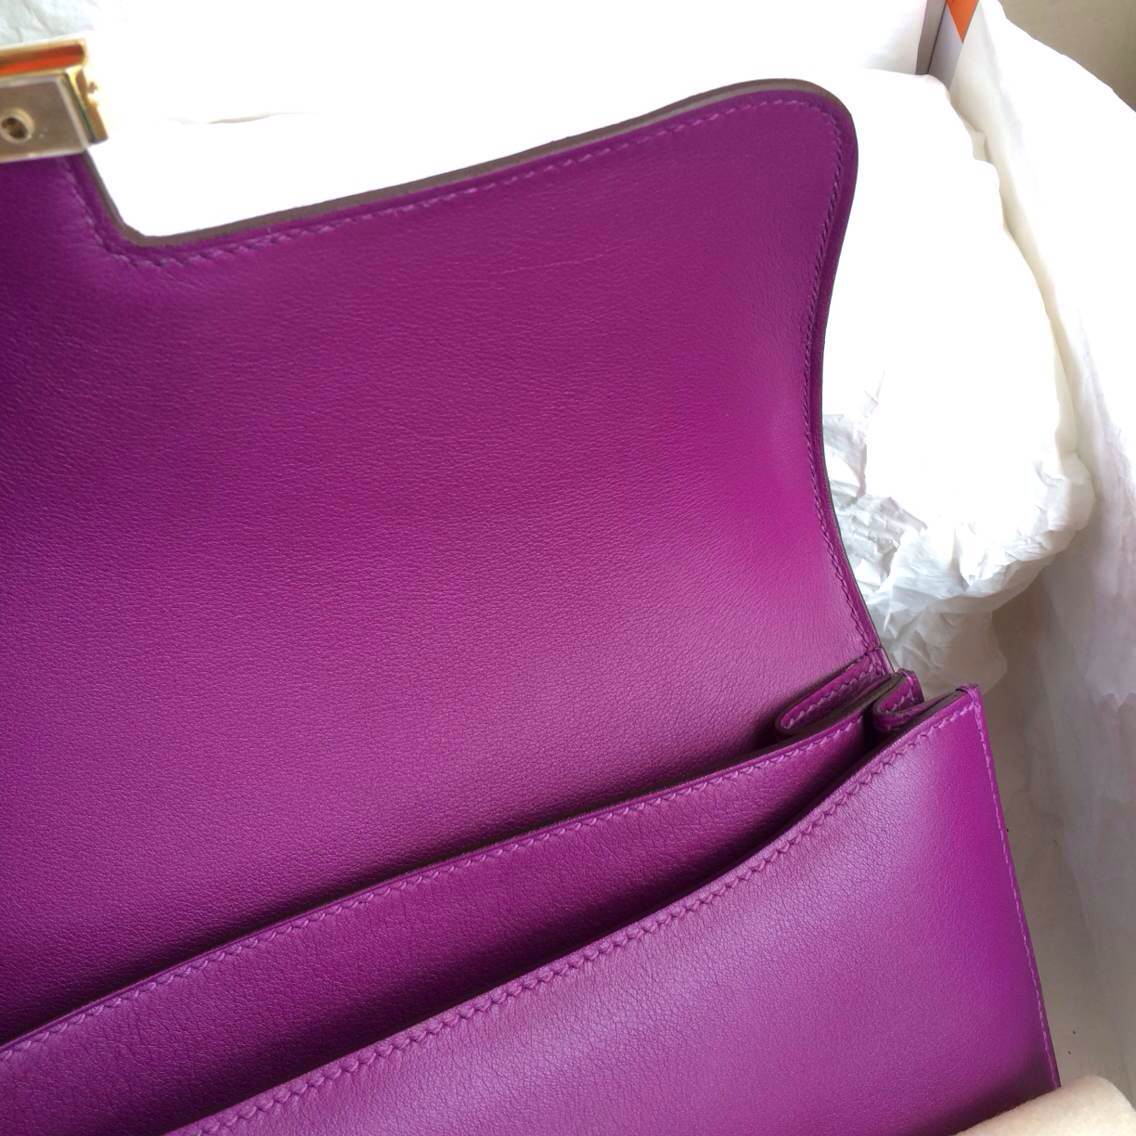 P9 Anemone Purple Constance Bag 26cm France Swift Leather Gold Hardware